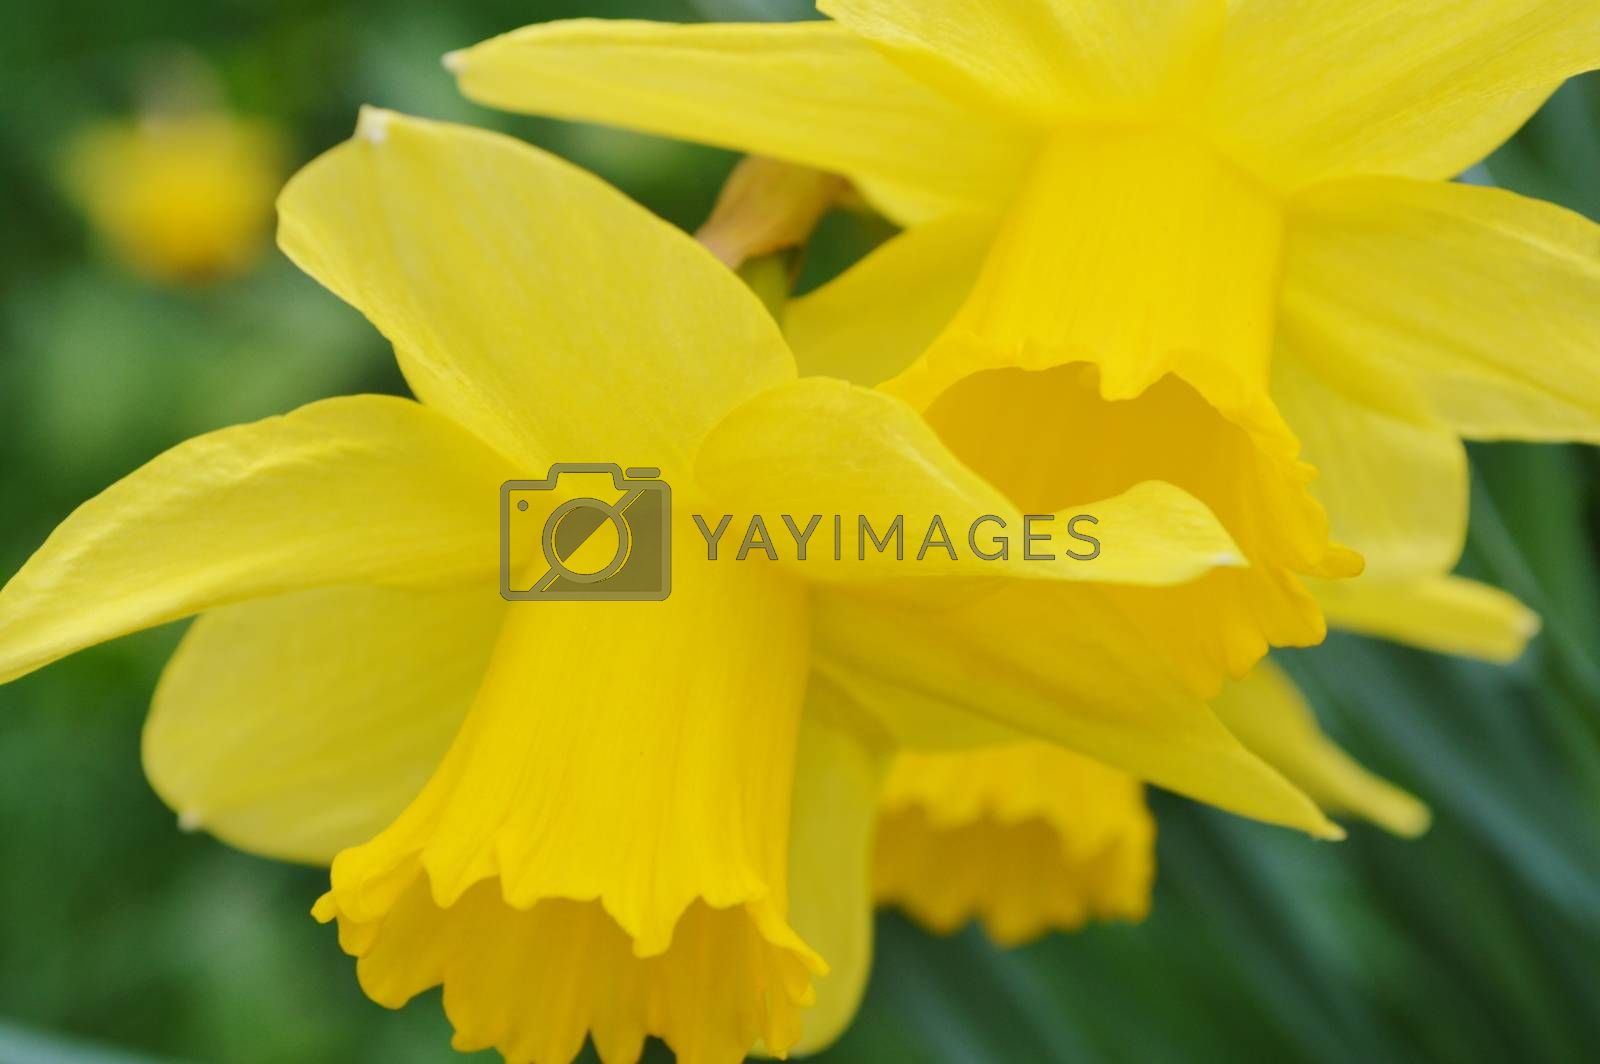 Royalty free image of Daffodils. by paulst